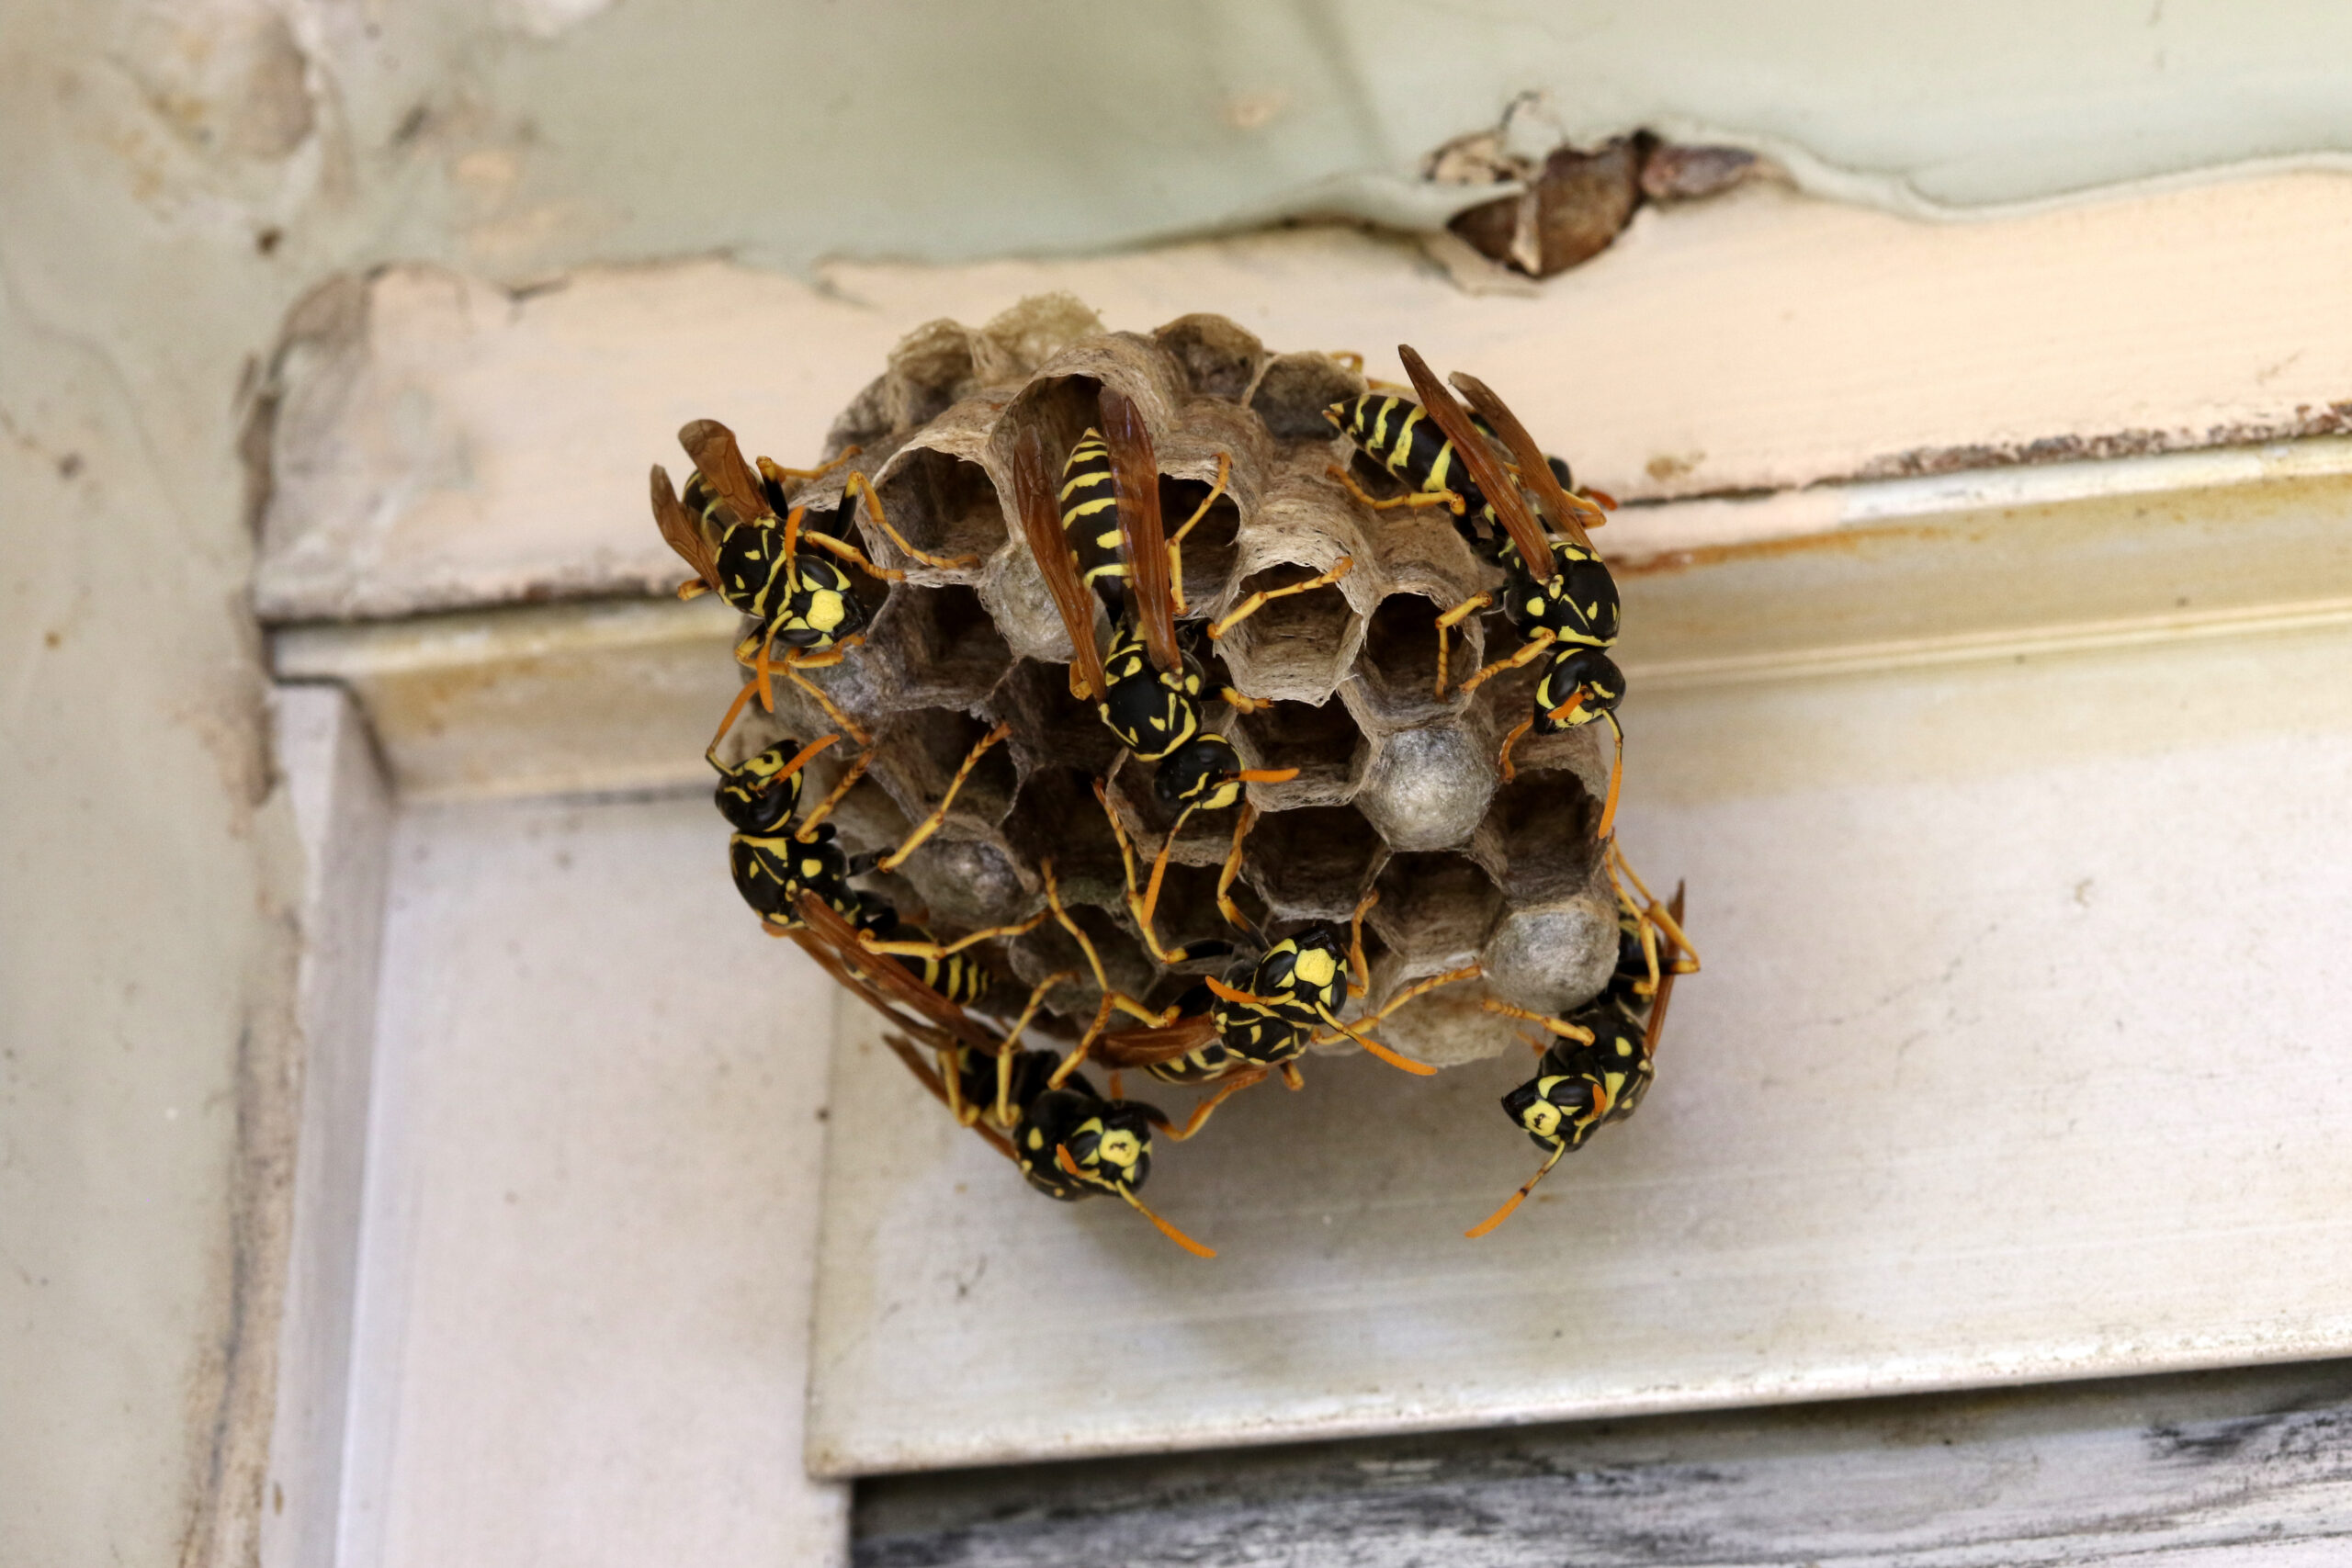 Bees crawling on a paper nest.